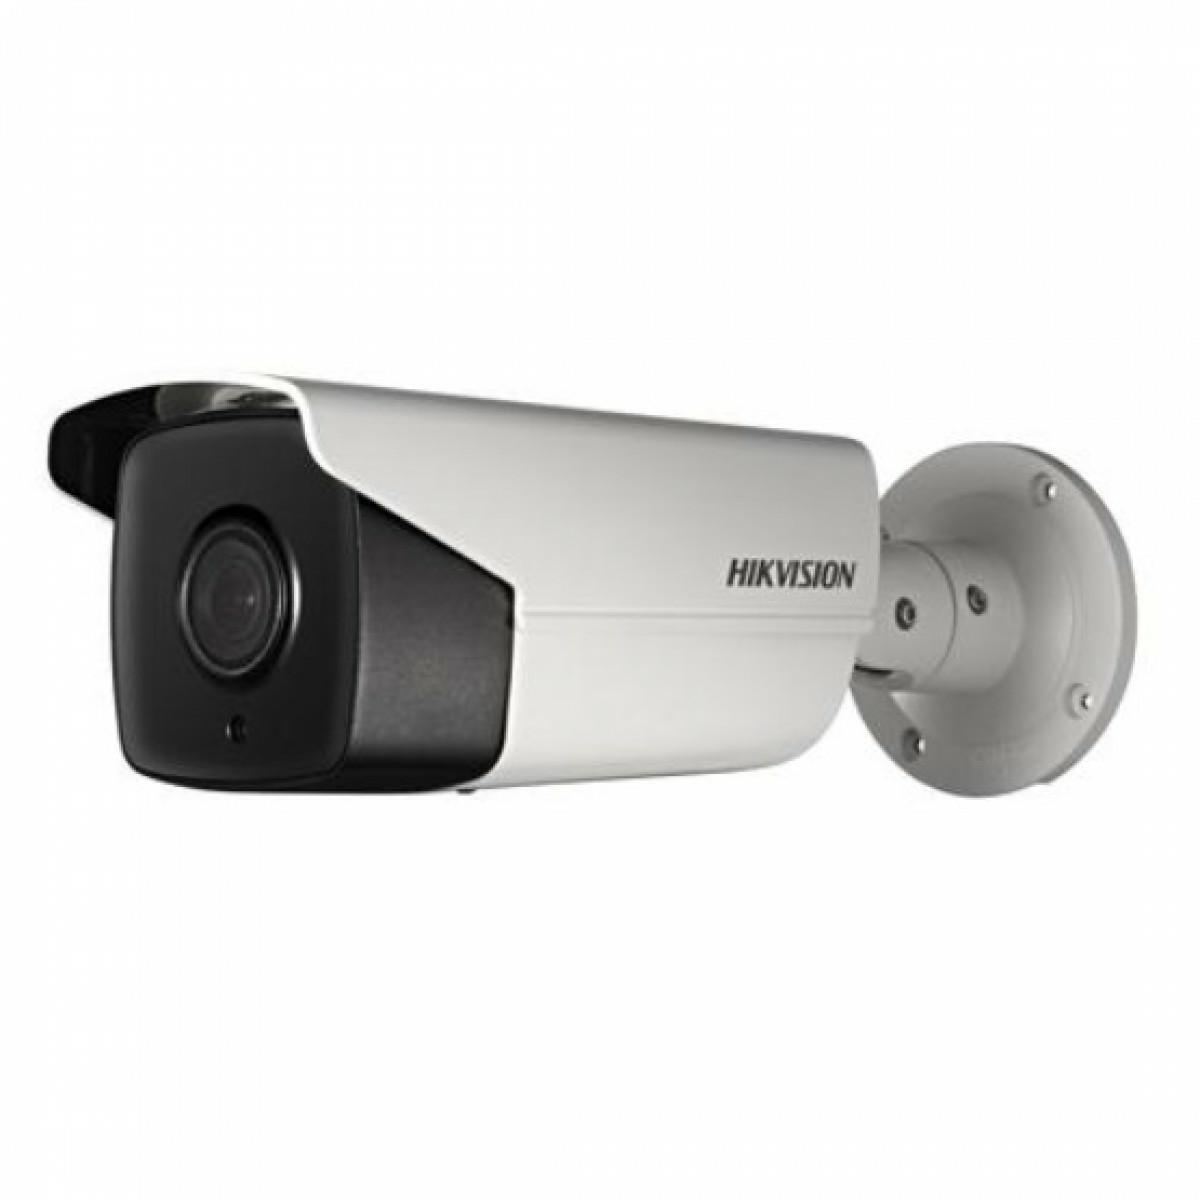 SICE Distributore Ufficiale  TELECAMERE IP Bullet IP 2Mpx VF 2.8-12mm motorizzata 25ips  WDR 120dB   DS-2CD4B26FWDIZS